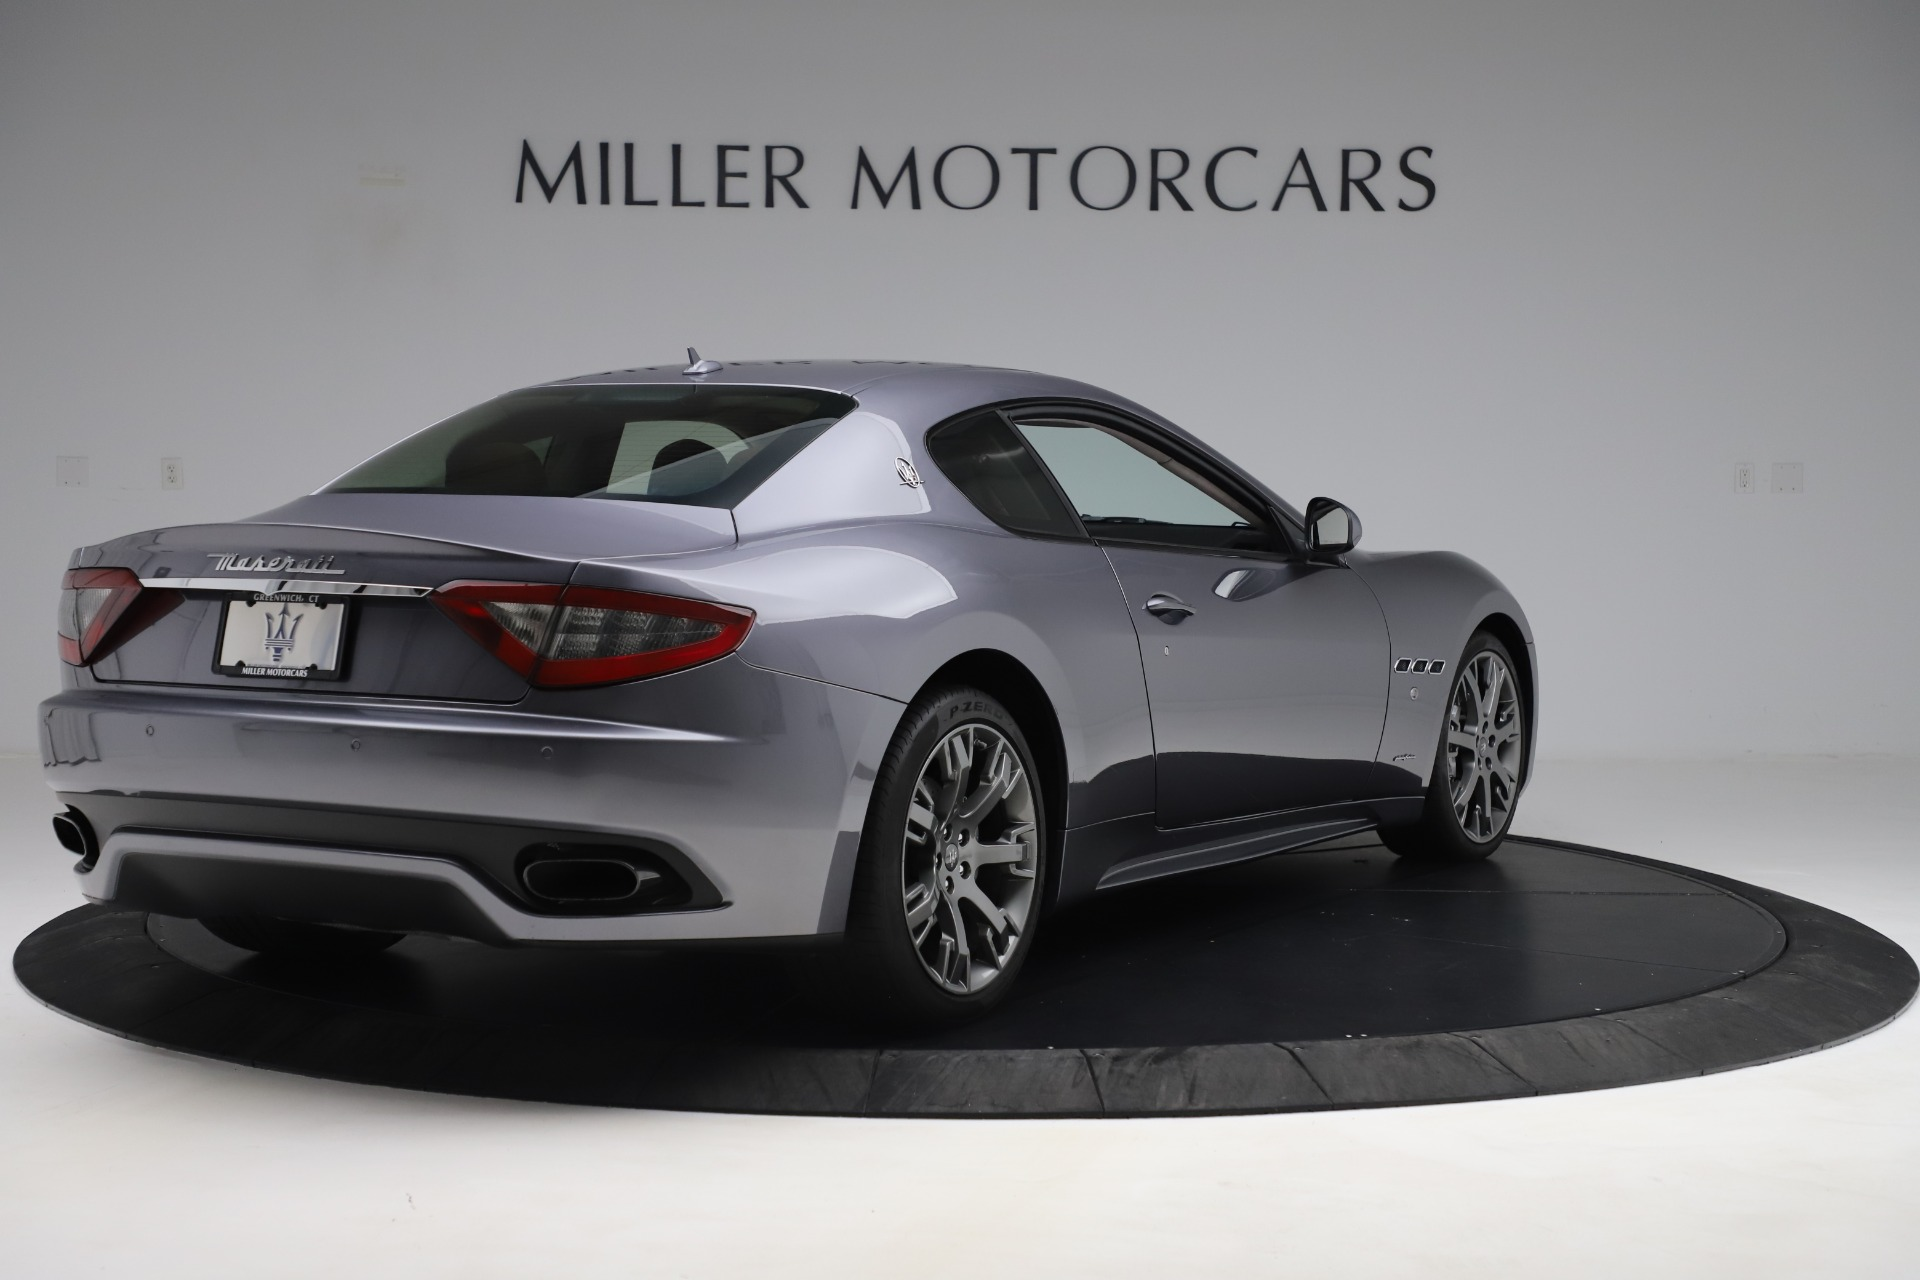 New 2016 Maserati GranTurismo Sport- TEST DRIVE SPECIAL For Sale In Greenwich, CT 166_p7